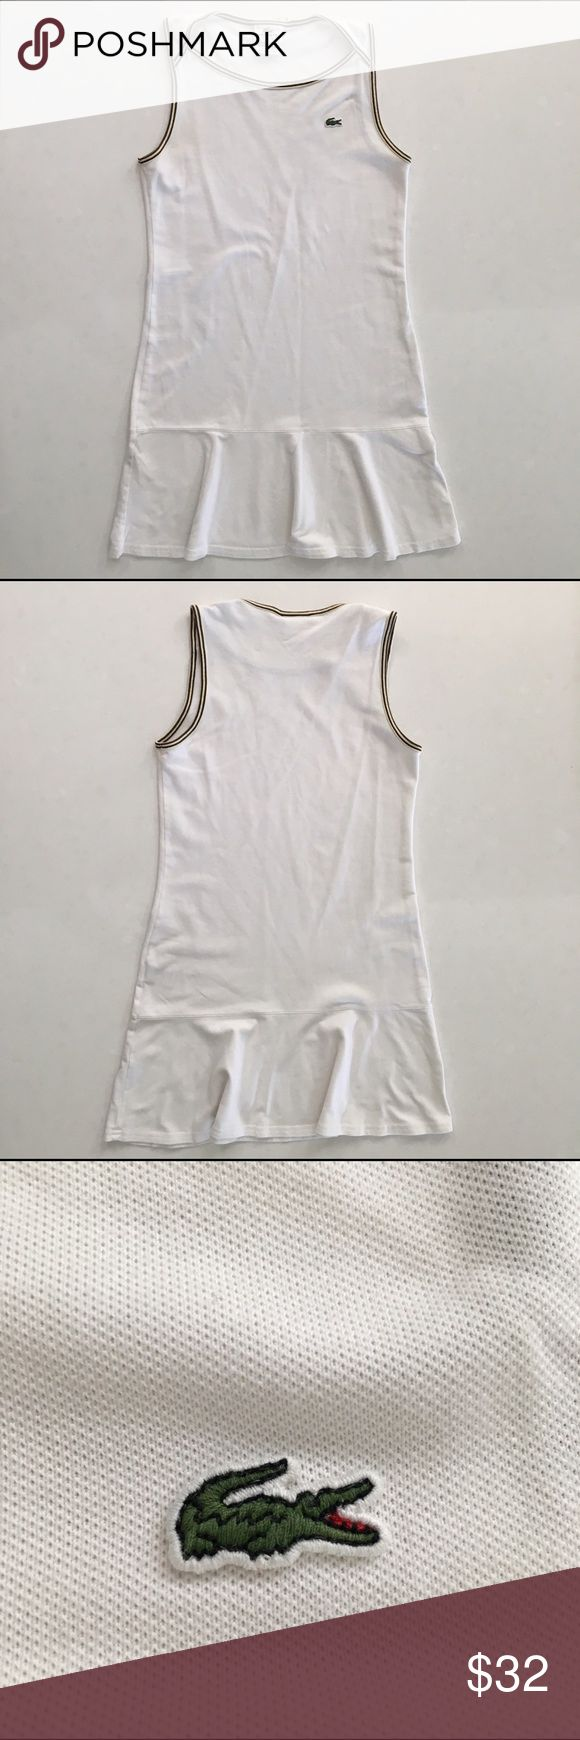 Lacoste Sport Tennis Dress - size 4 - 6 Beautiful condition for a match or pair with sneaks and sport your very best athleasure garb with this French classic.   Great for a bathing suit cover as well.  Size FR 36, US 4-6 Lacoste Dresses Mini